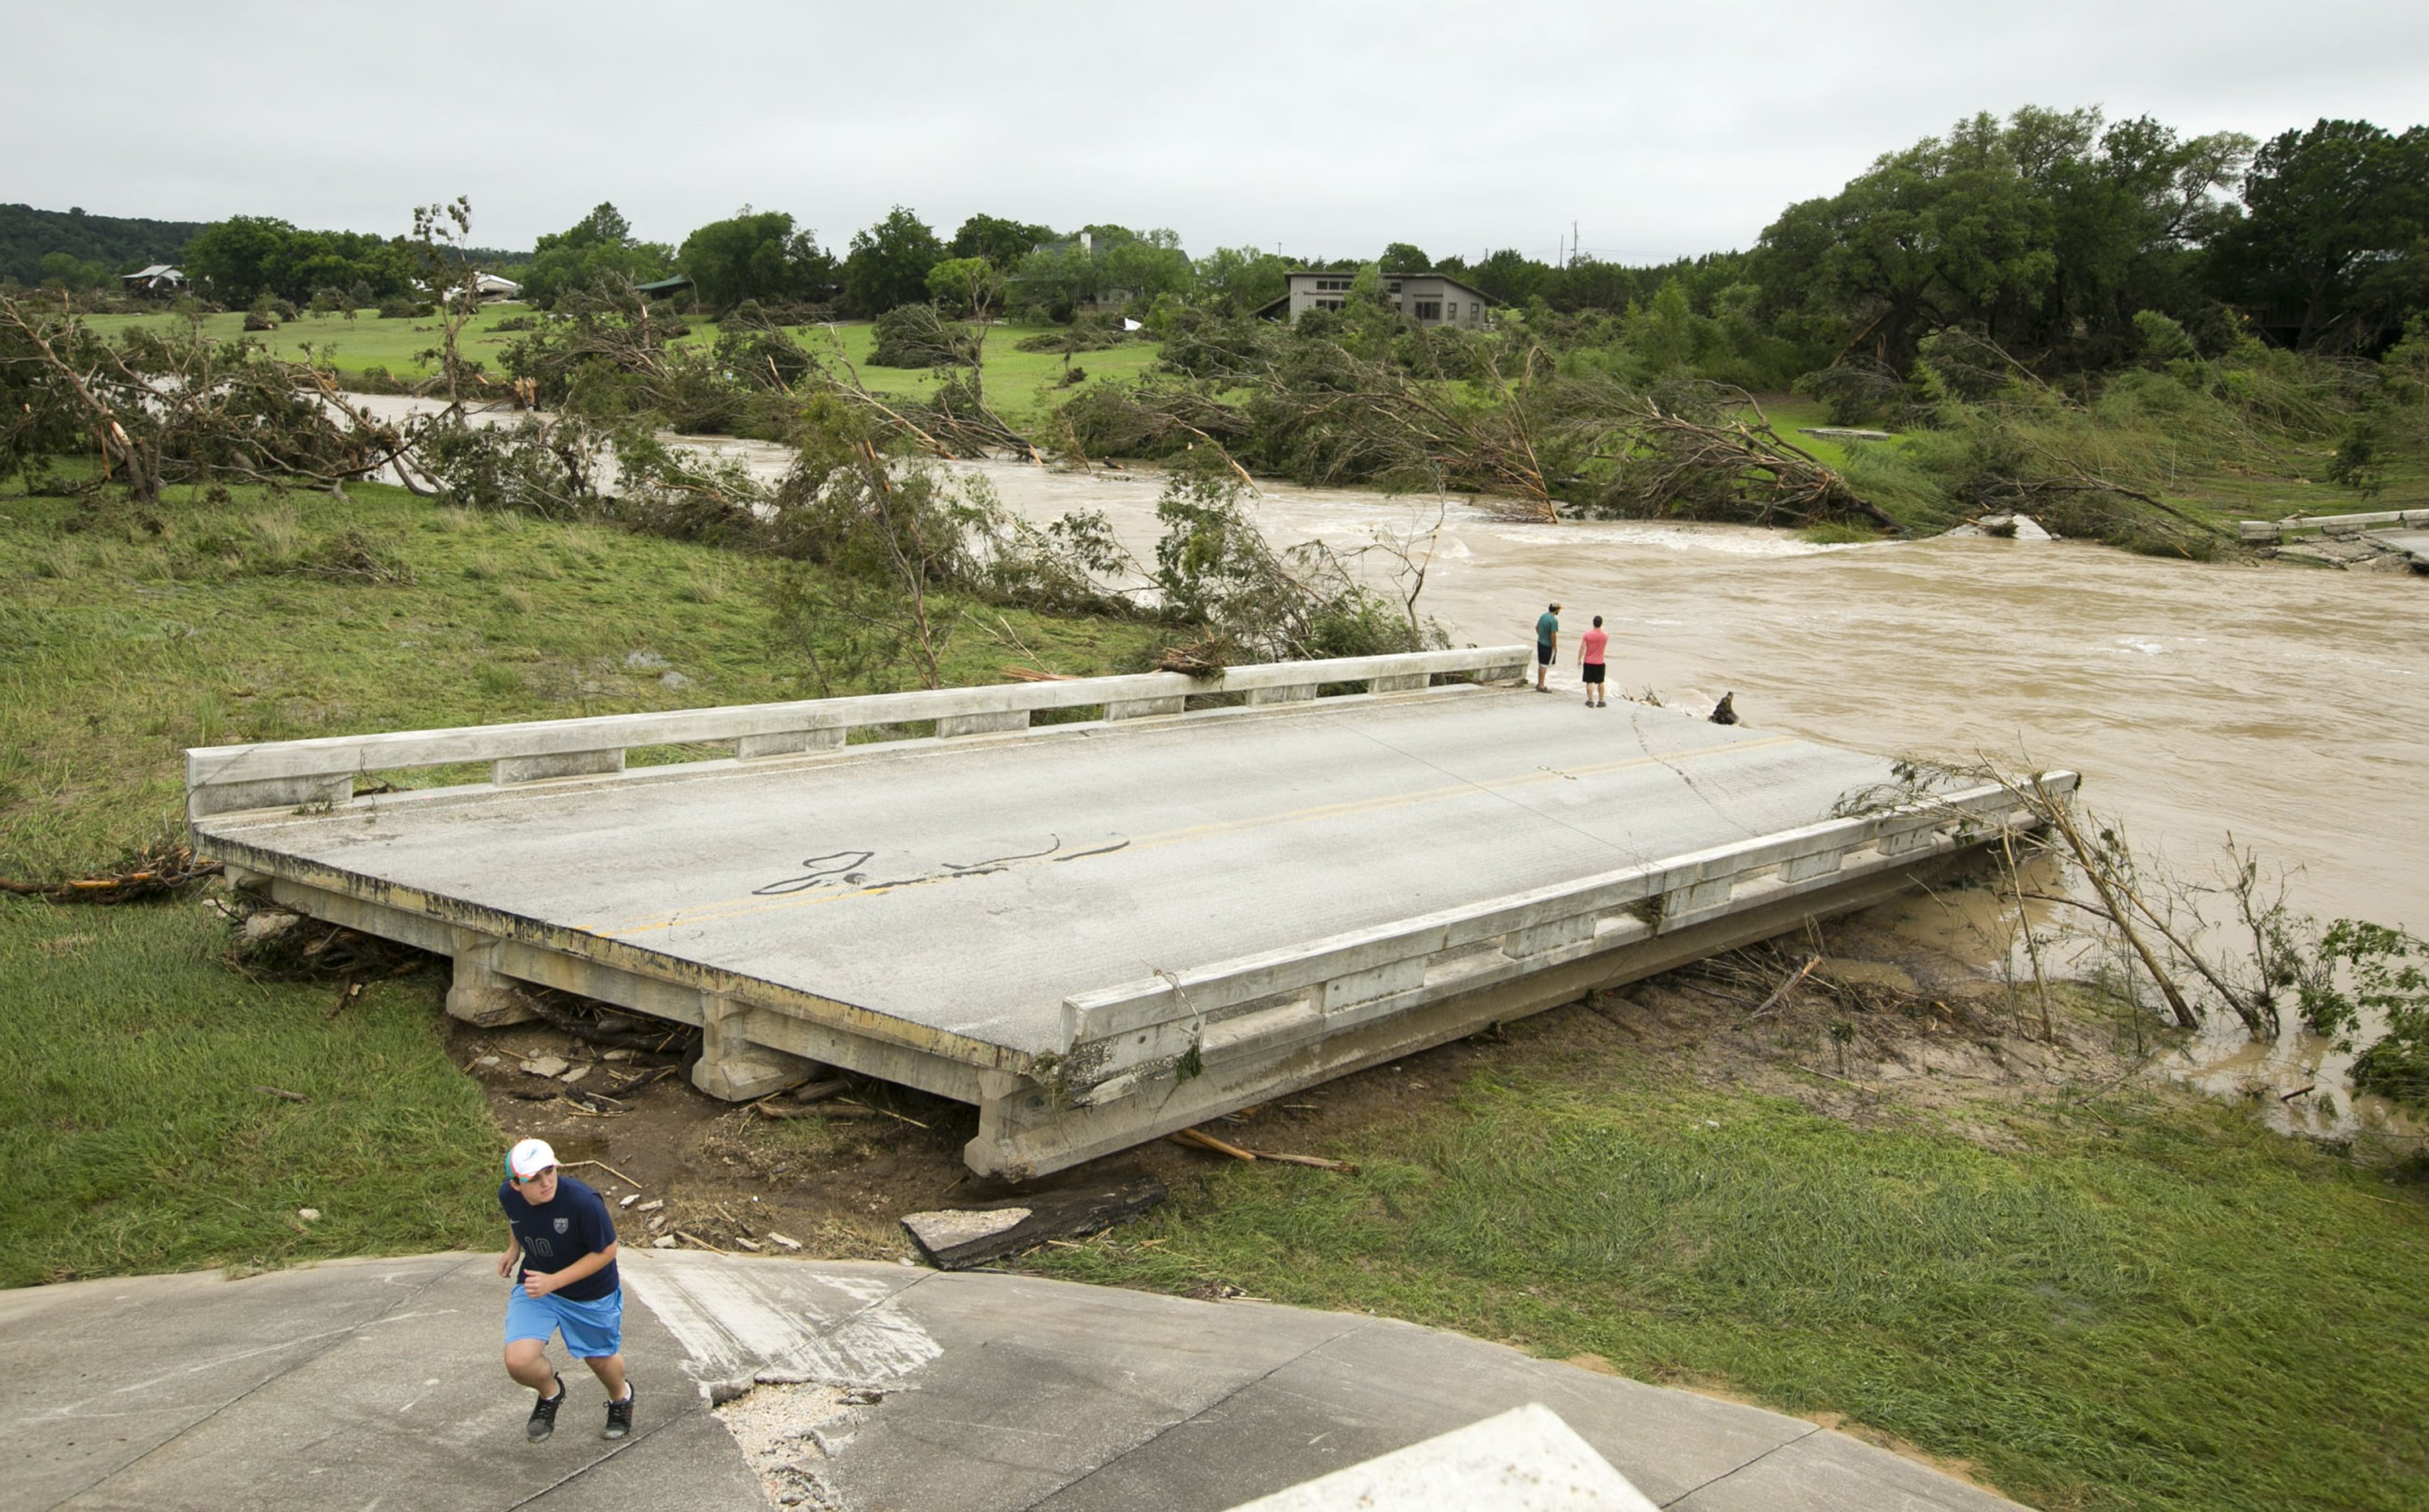 Dustin McClintock, Brandon Bankston, and Hesston Krause look at the destroyed remains of the Fischer Store Road bridge over the Blanco River near Wimberley, Texas on May 24, 2015.